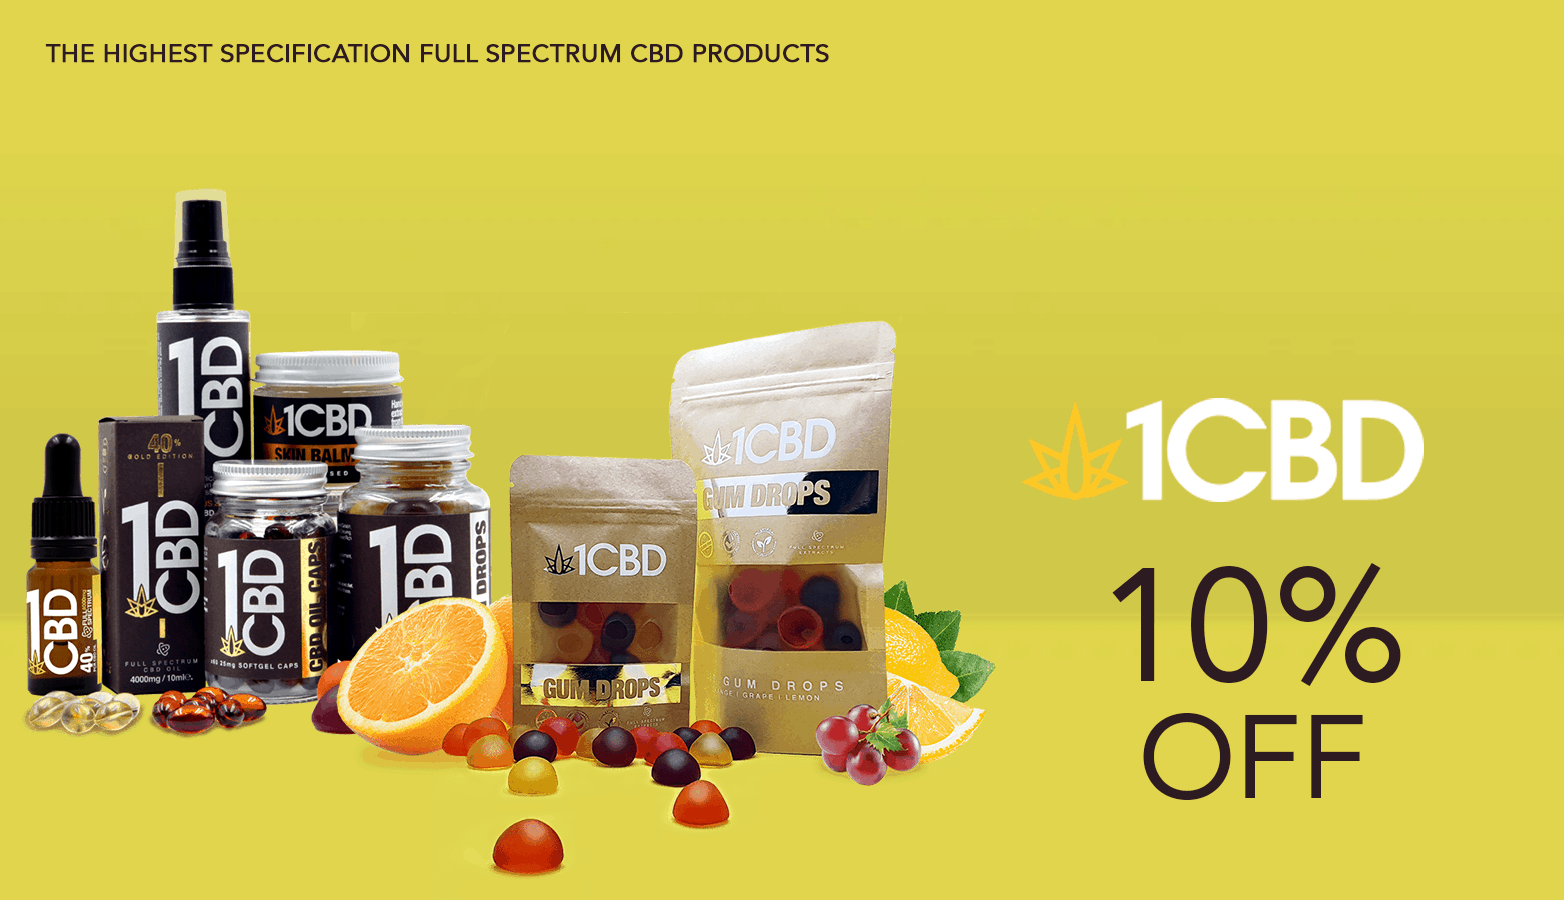 1 CBD UK Coupon Code 10 Percent Off Website